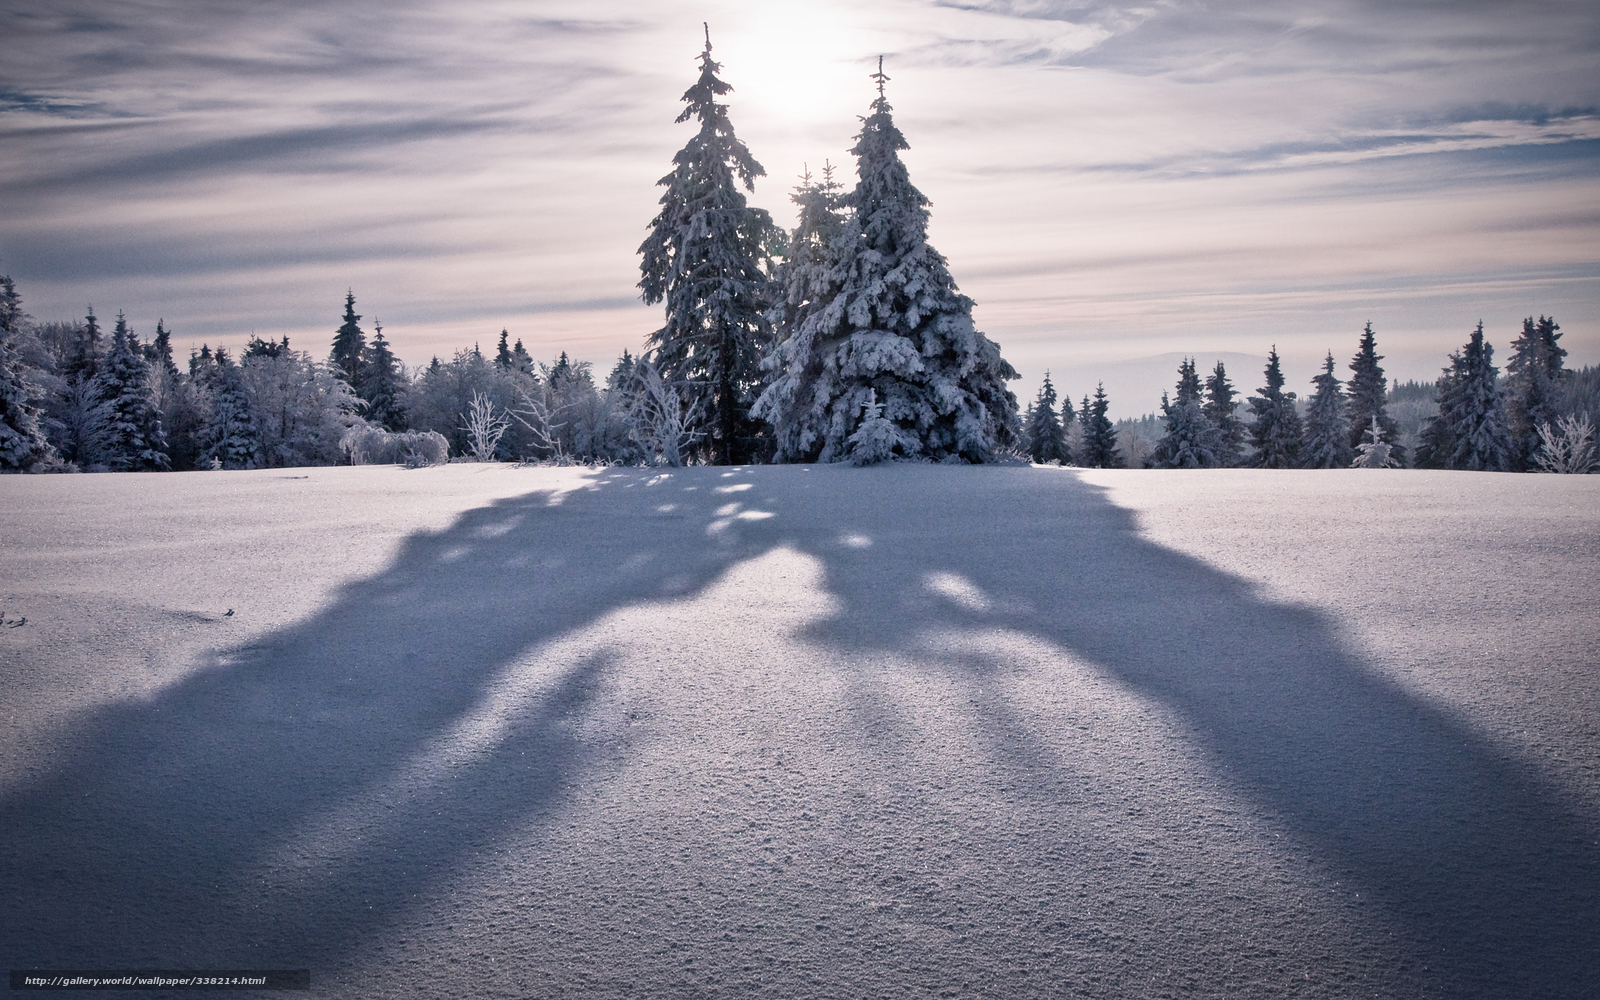 Download wallpaper winter landscapes,  nature,  Winter,  winter wallpaper free desktop wallpaper in the resolution 2560x1600 — picture №338214